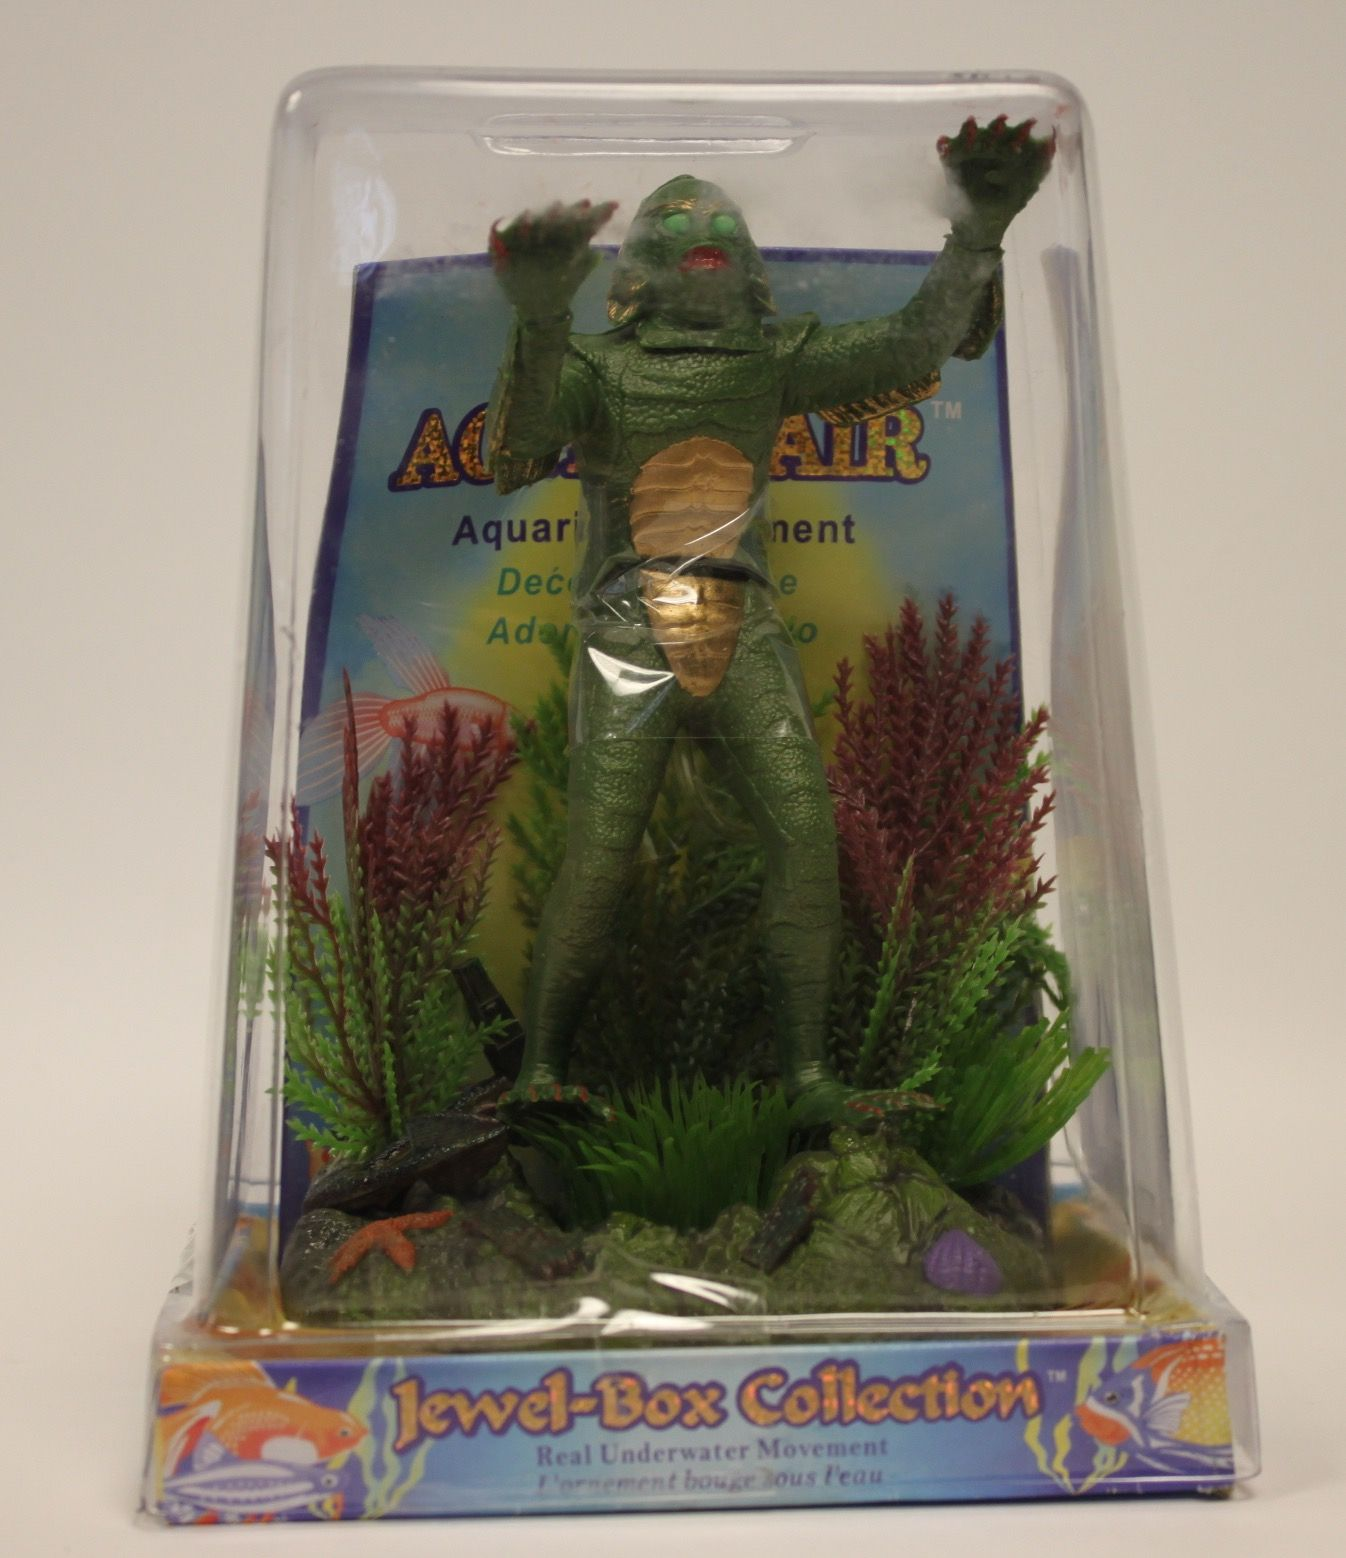 Creature From The Black Lagoon Aquarium Ornament Primary